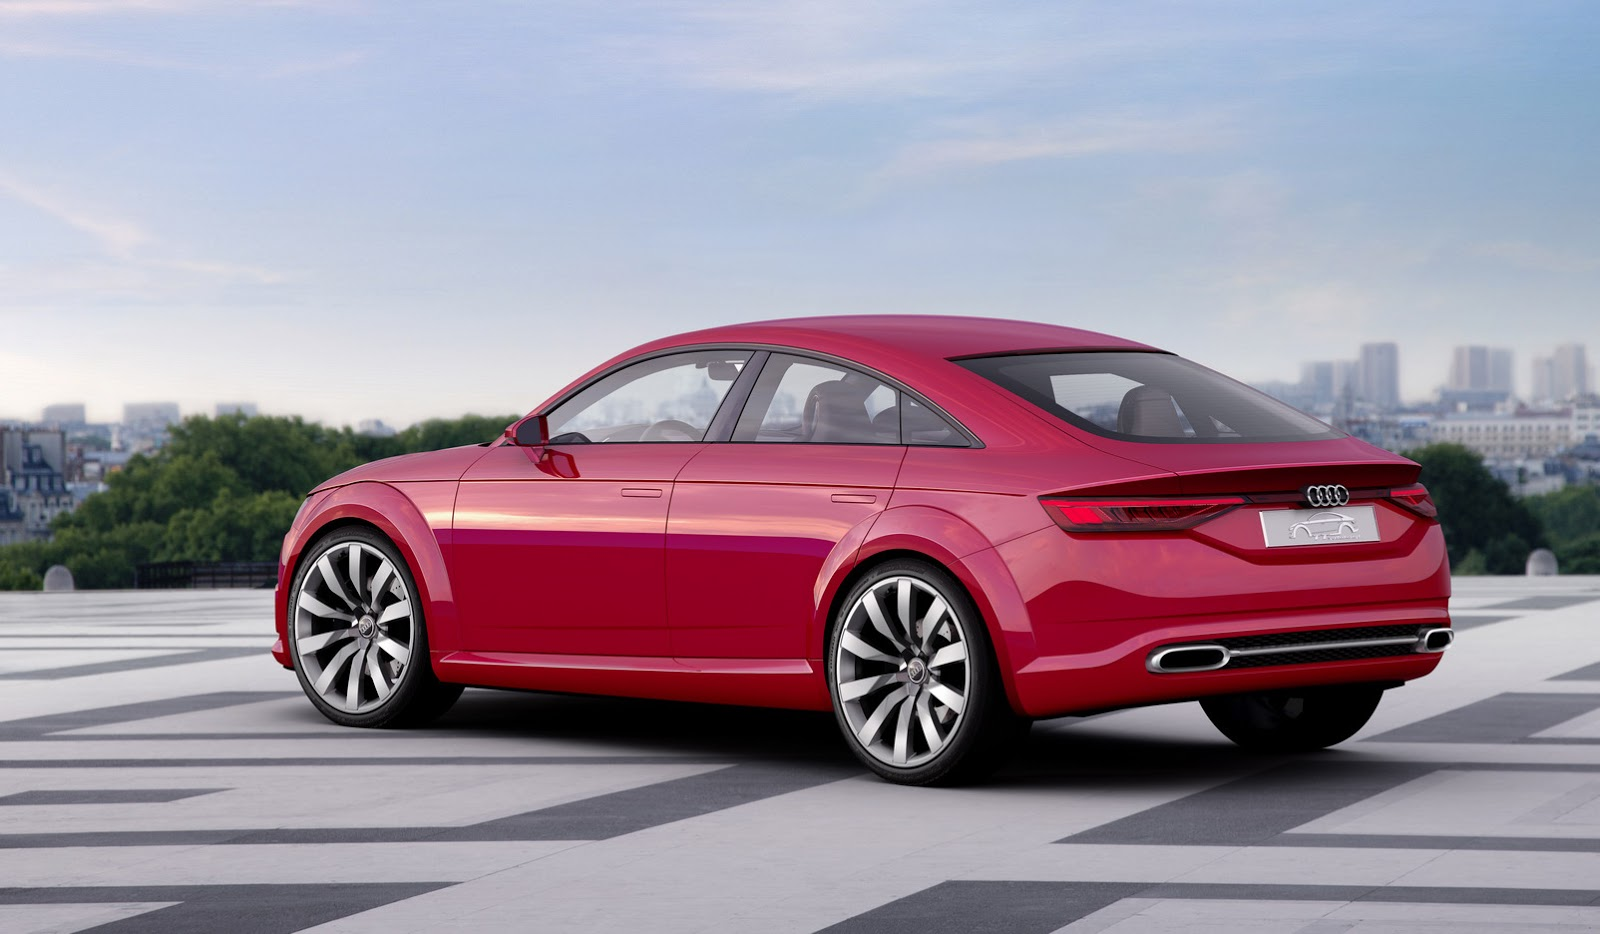 audi 39 s new tt sportback concept revealed ahead of paris show carscoops. Black Bedroom Furniture Sets. Home Design Ideas